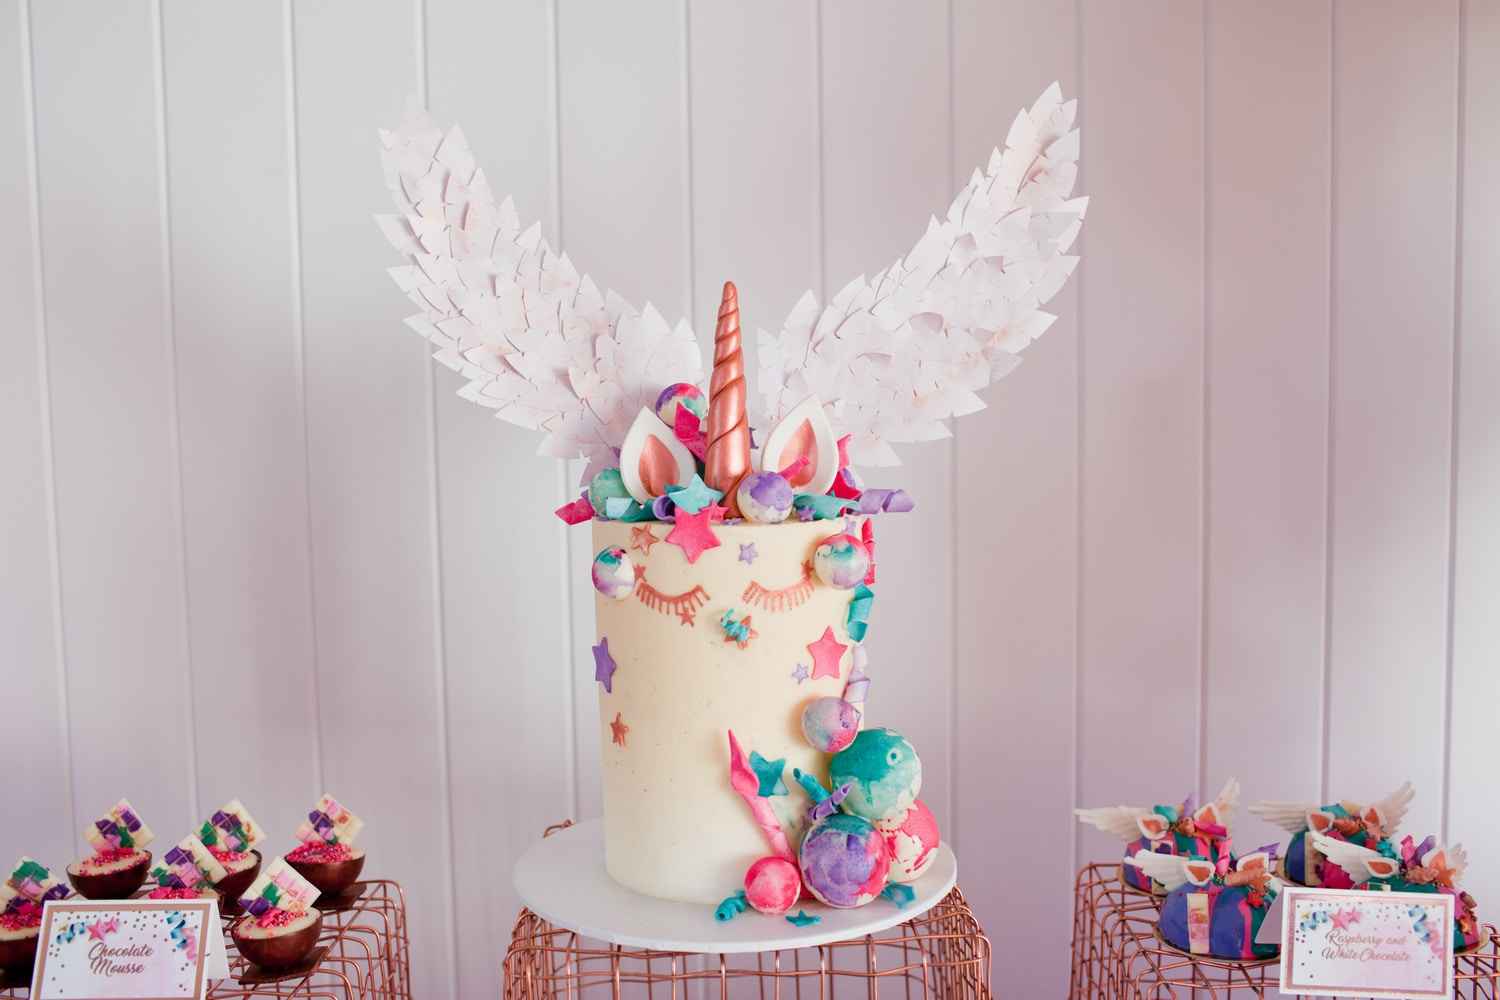 CAKE TRENDS WITH LIFE'S LITTLE CELEBRATIONS